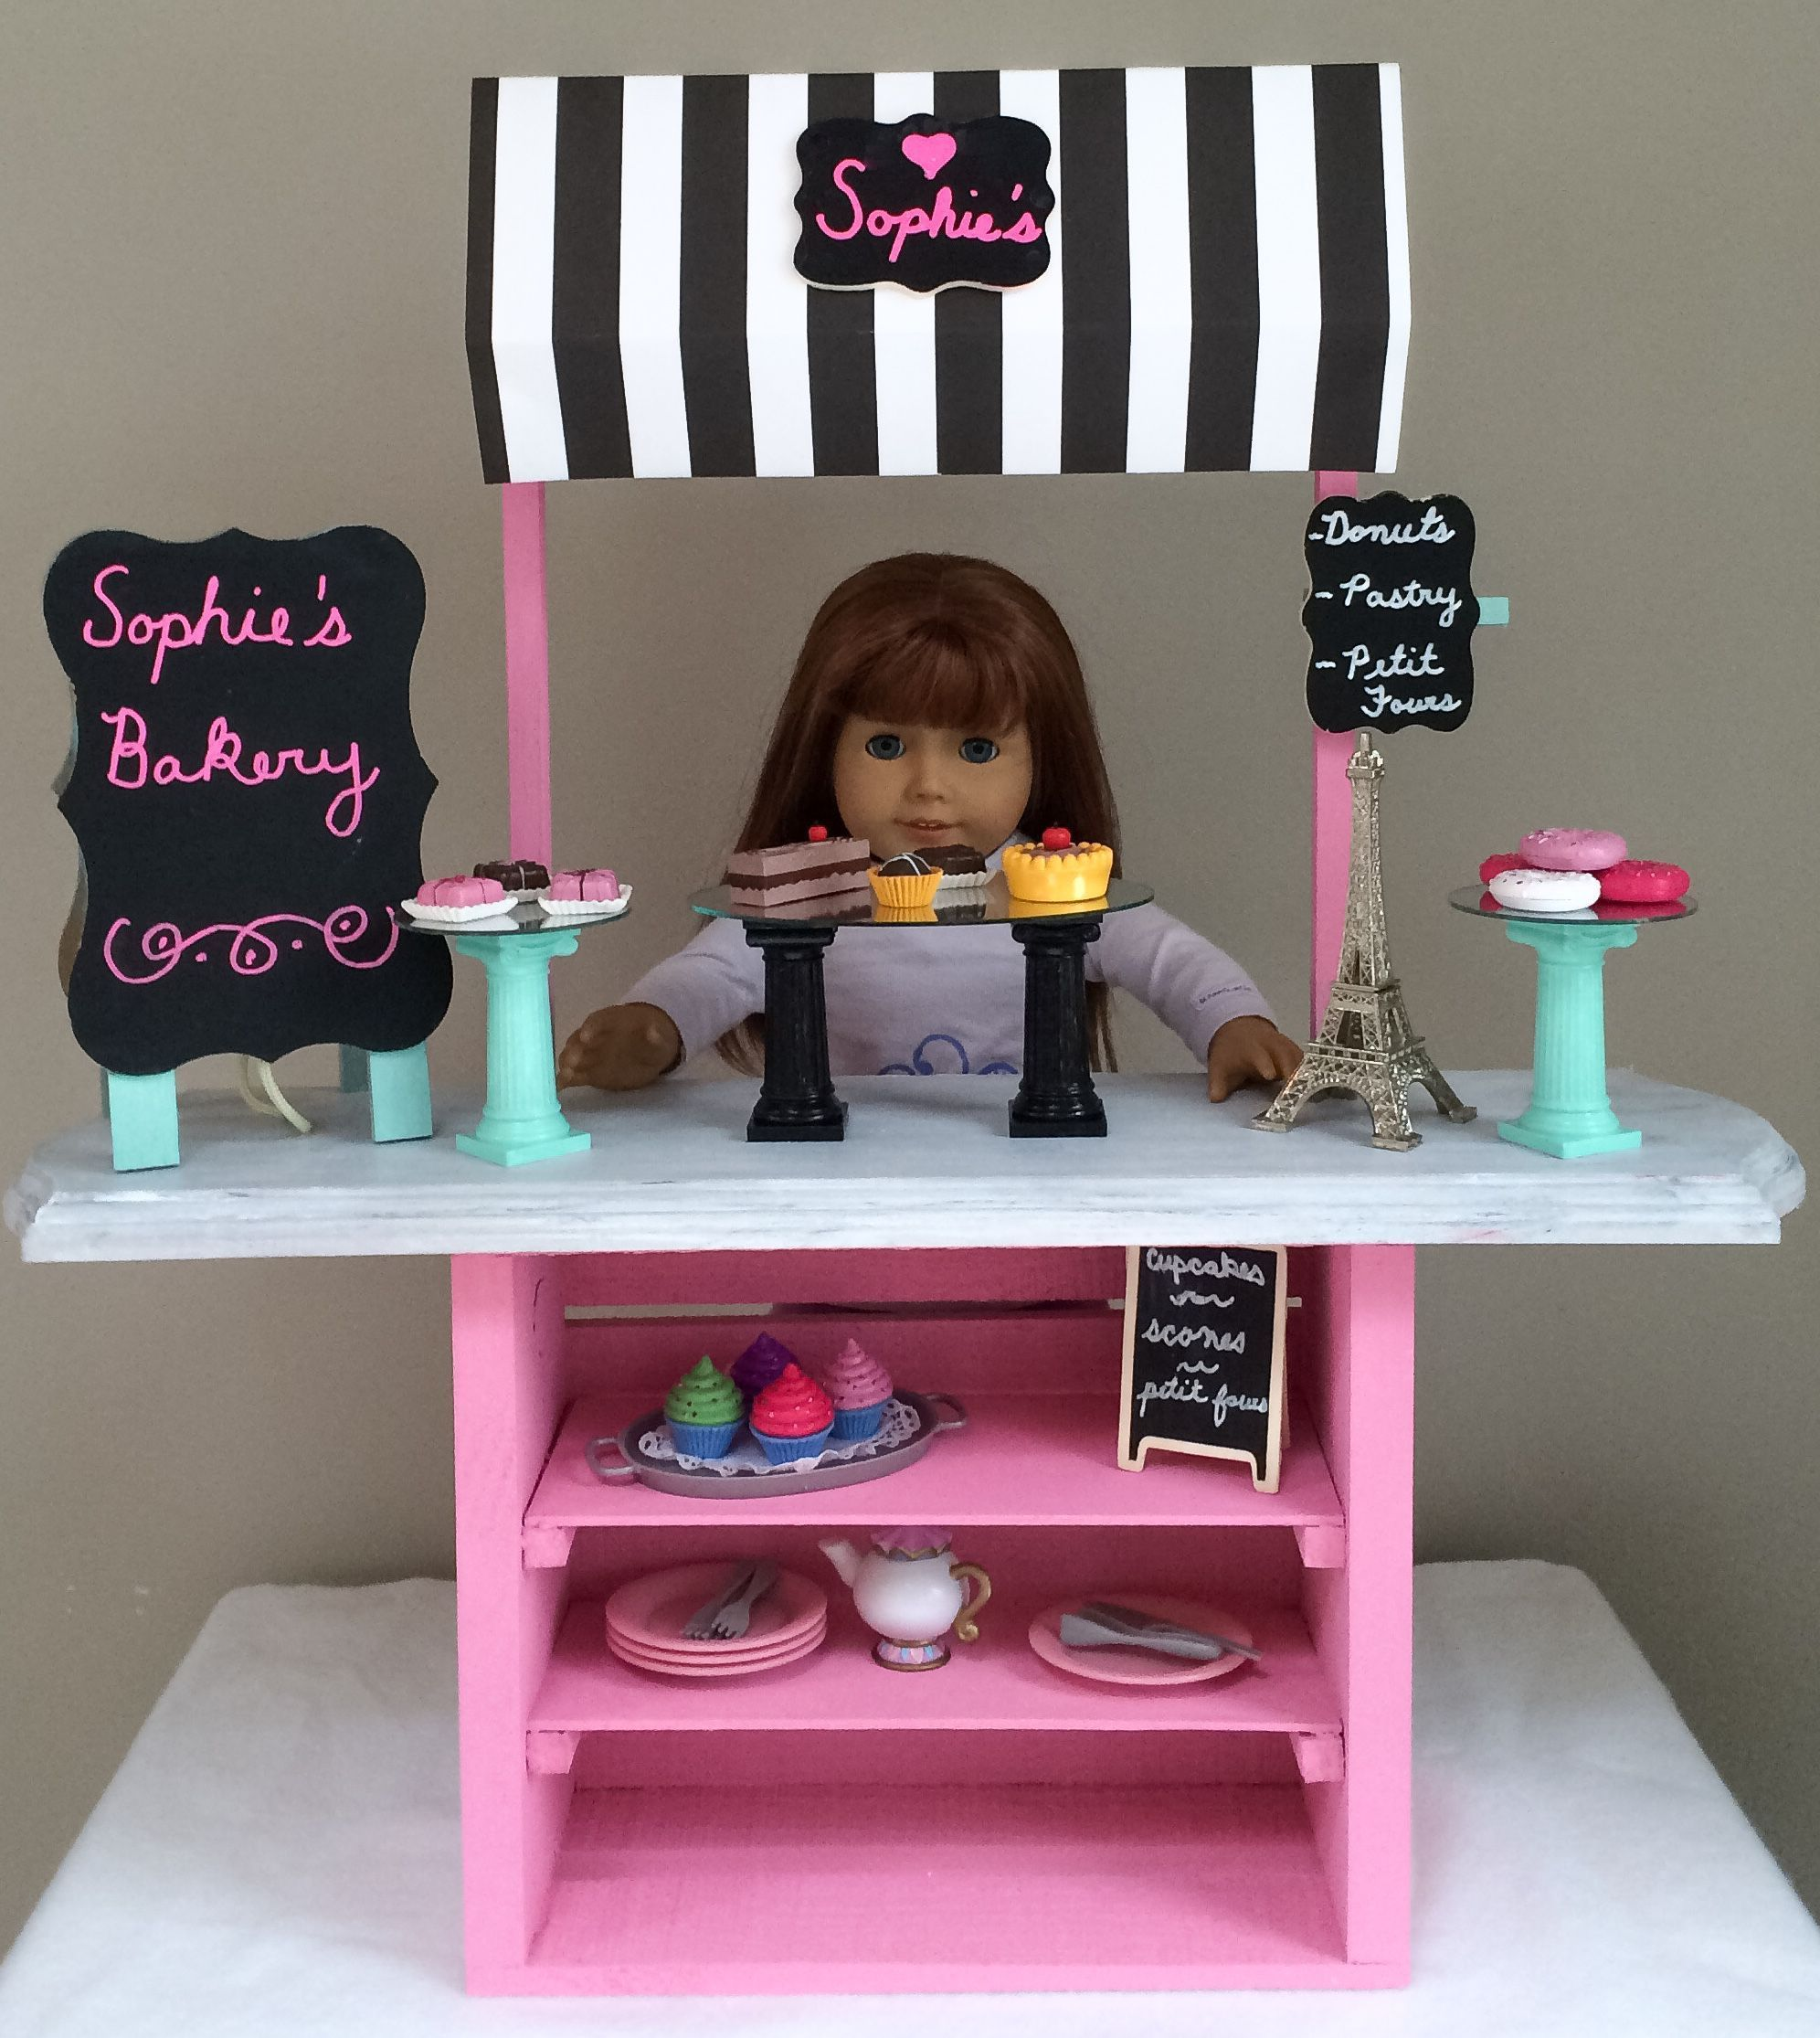 DIY American Girl Bakery with Craft Store Materials